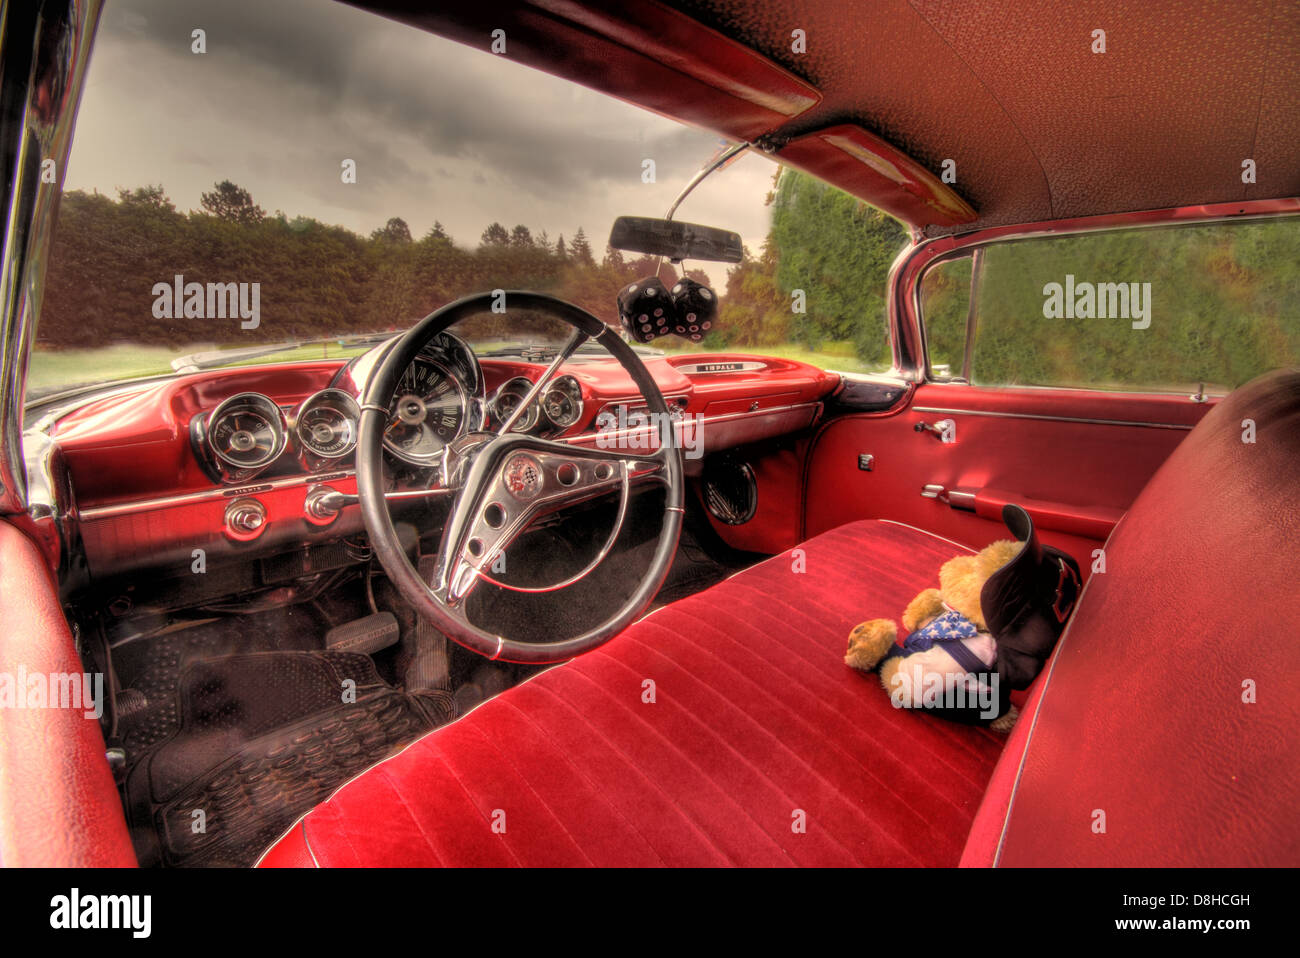 inside,steering,wheel,seat,seating,dash,board,dashboard,custom,American,USA,US,Gotonysmith,Buy Pictures of,Buy Images Of